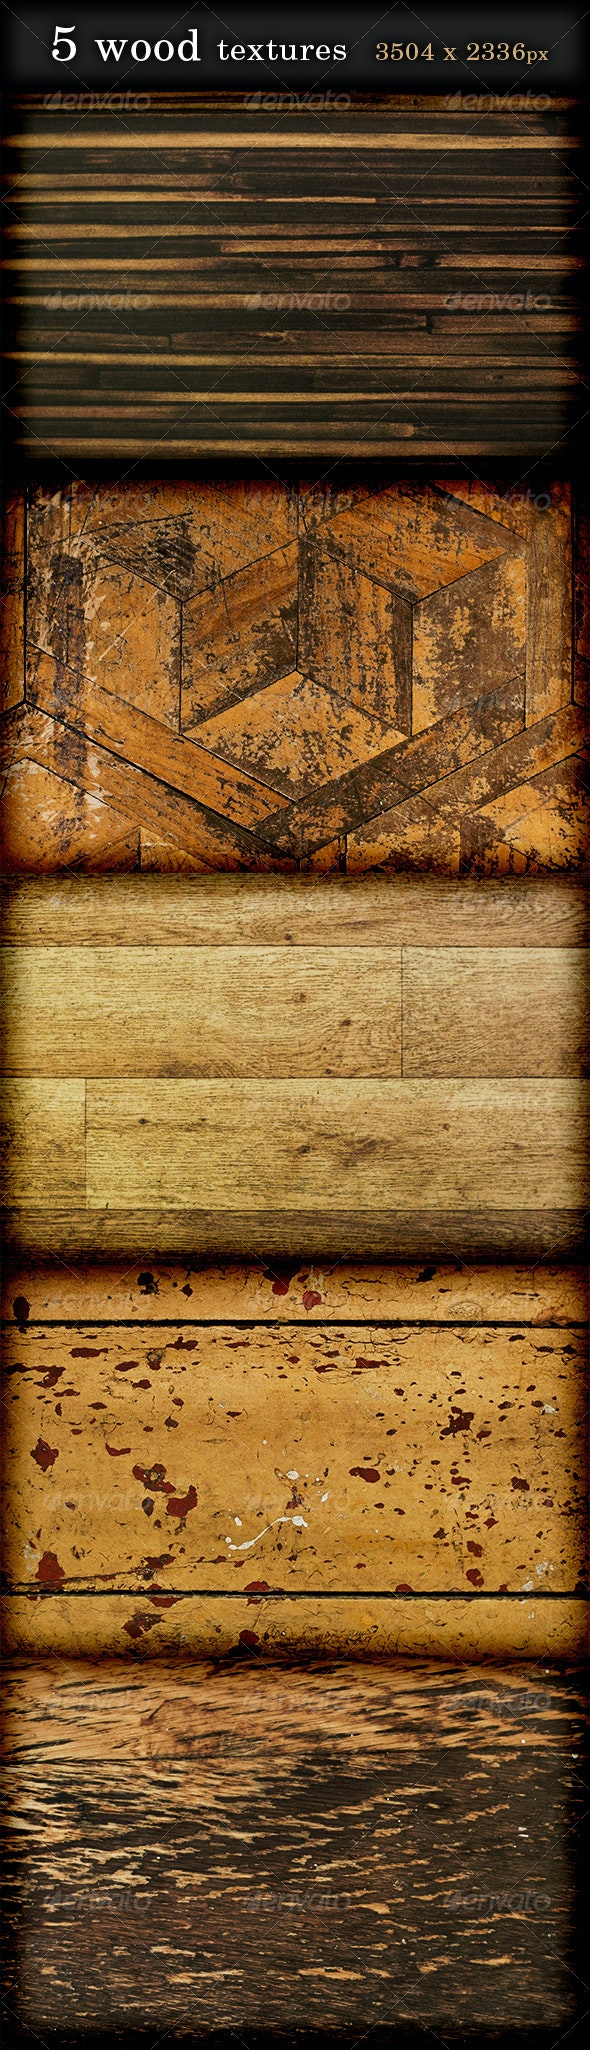 5 Wood Textures high resolution - Wood Textures